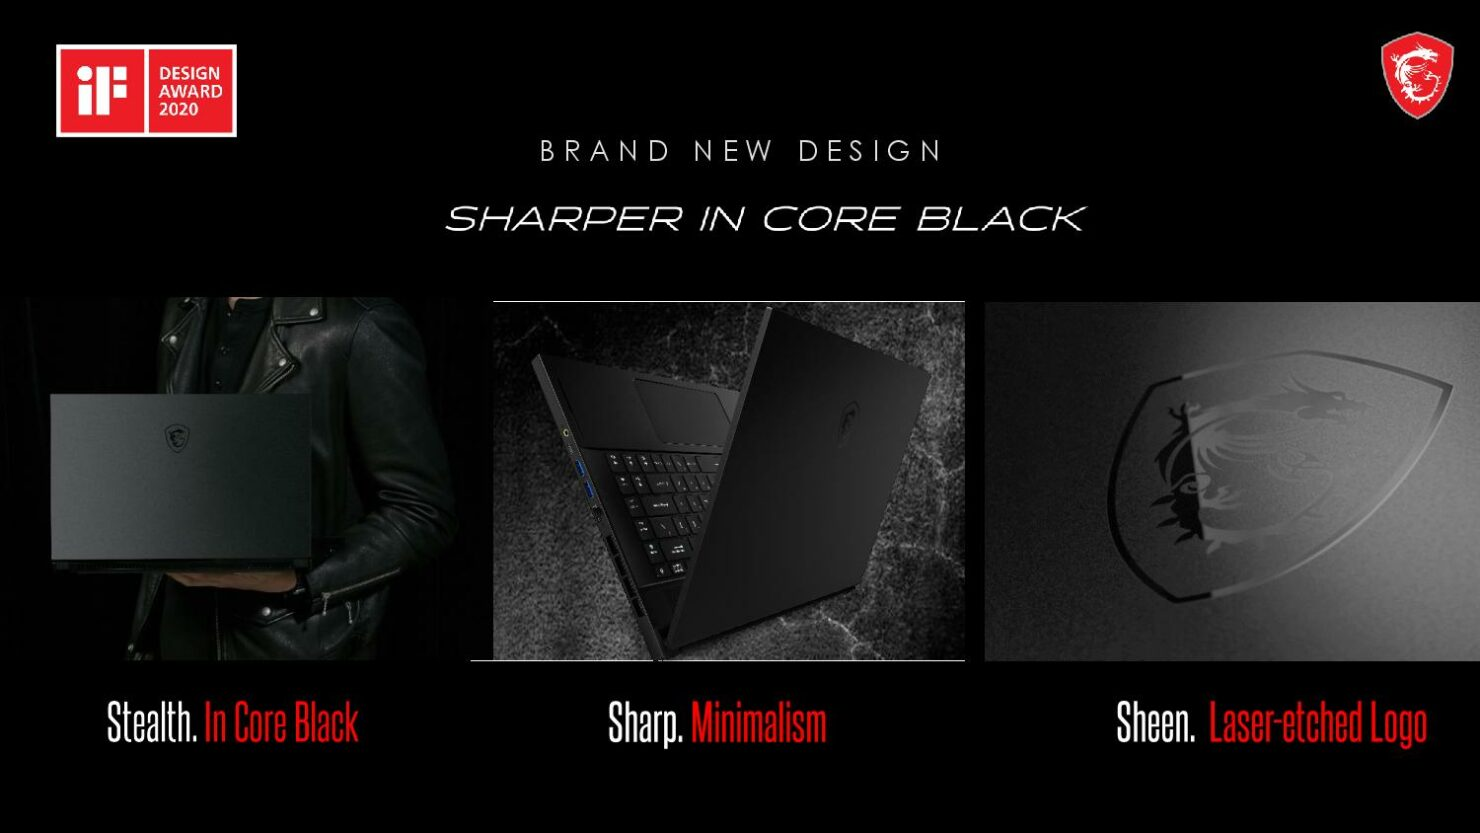 msi-gs66-stealth-product-information-page-005-2